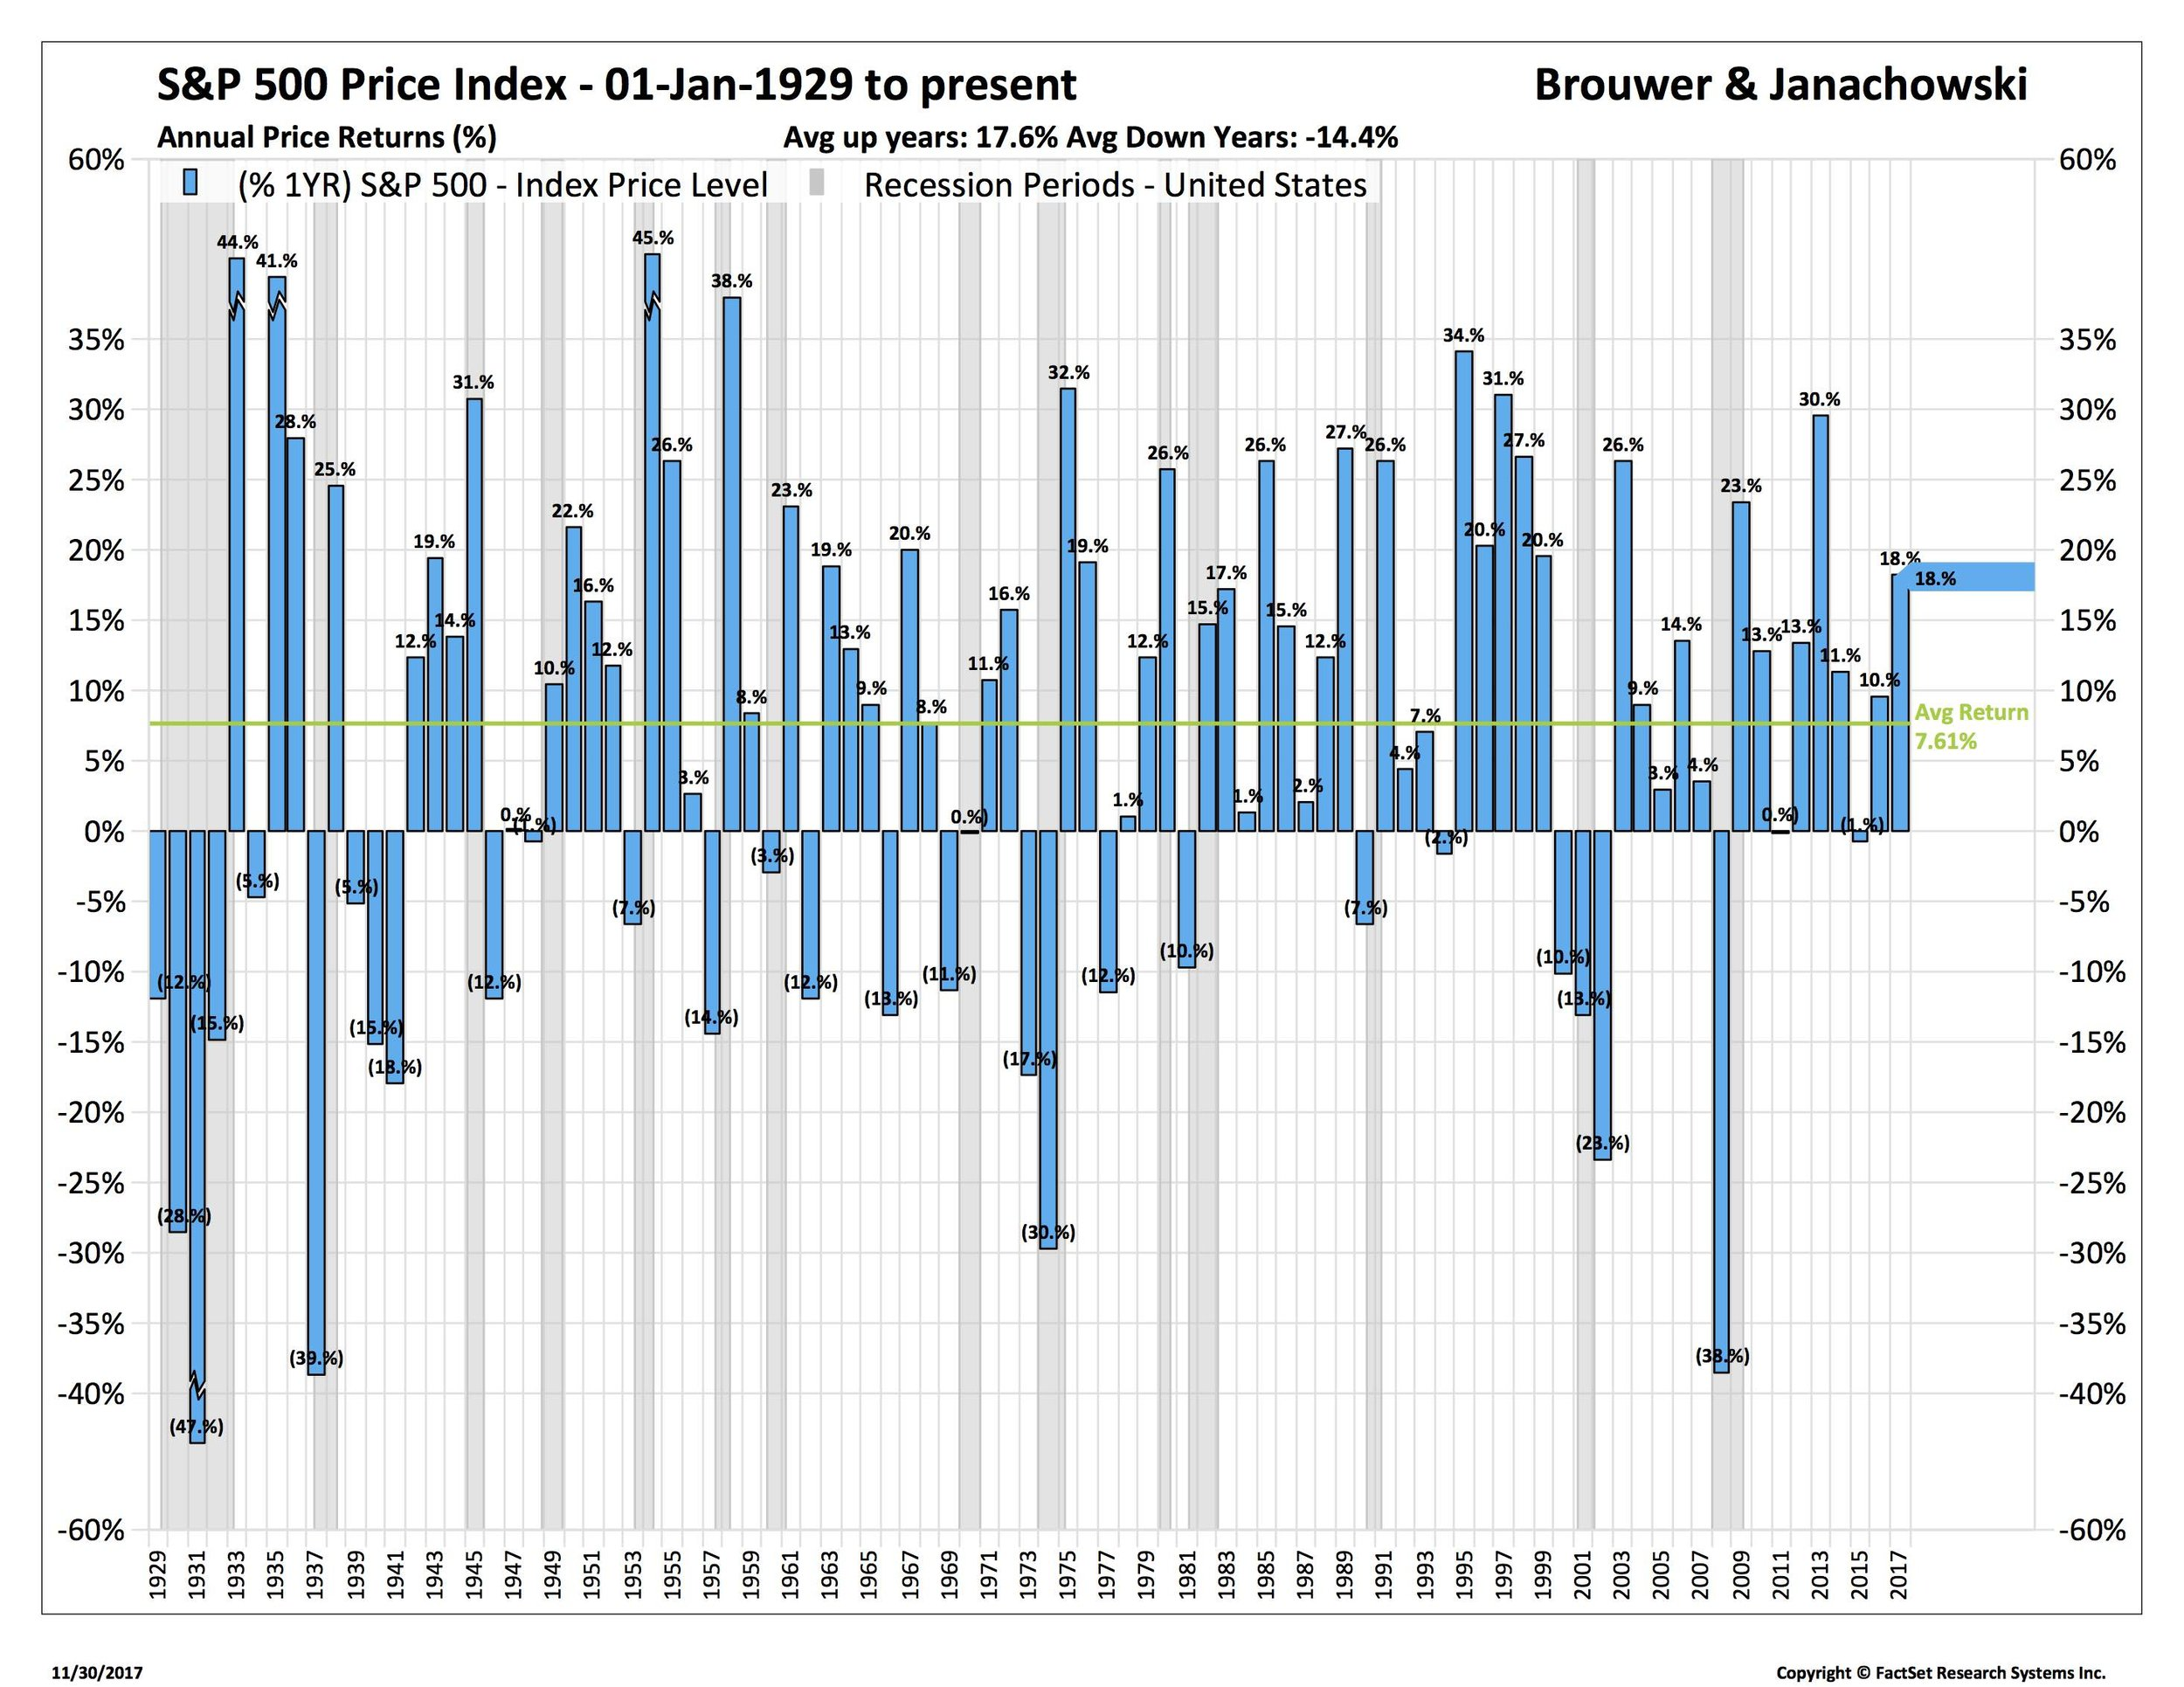 Blog 3 12-1-17 S&P 500 Price Index Annual Returns 1929 to present_SP50-USA.jpg